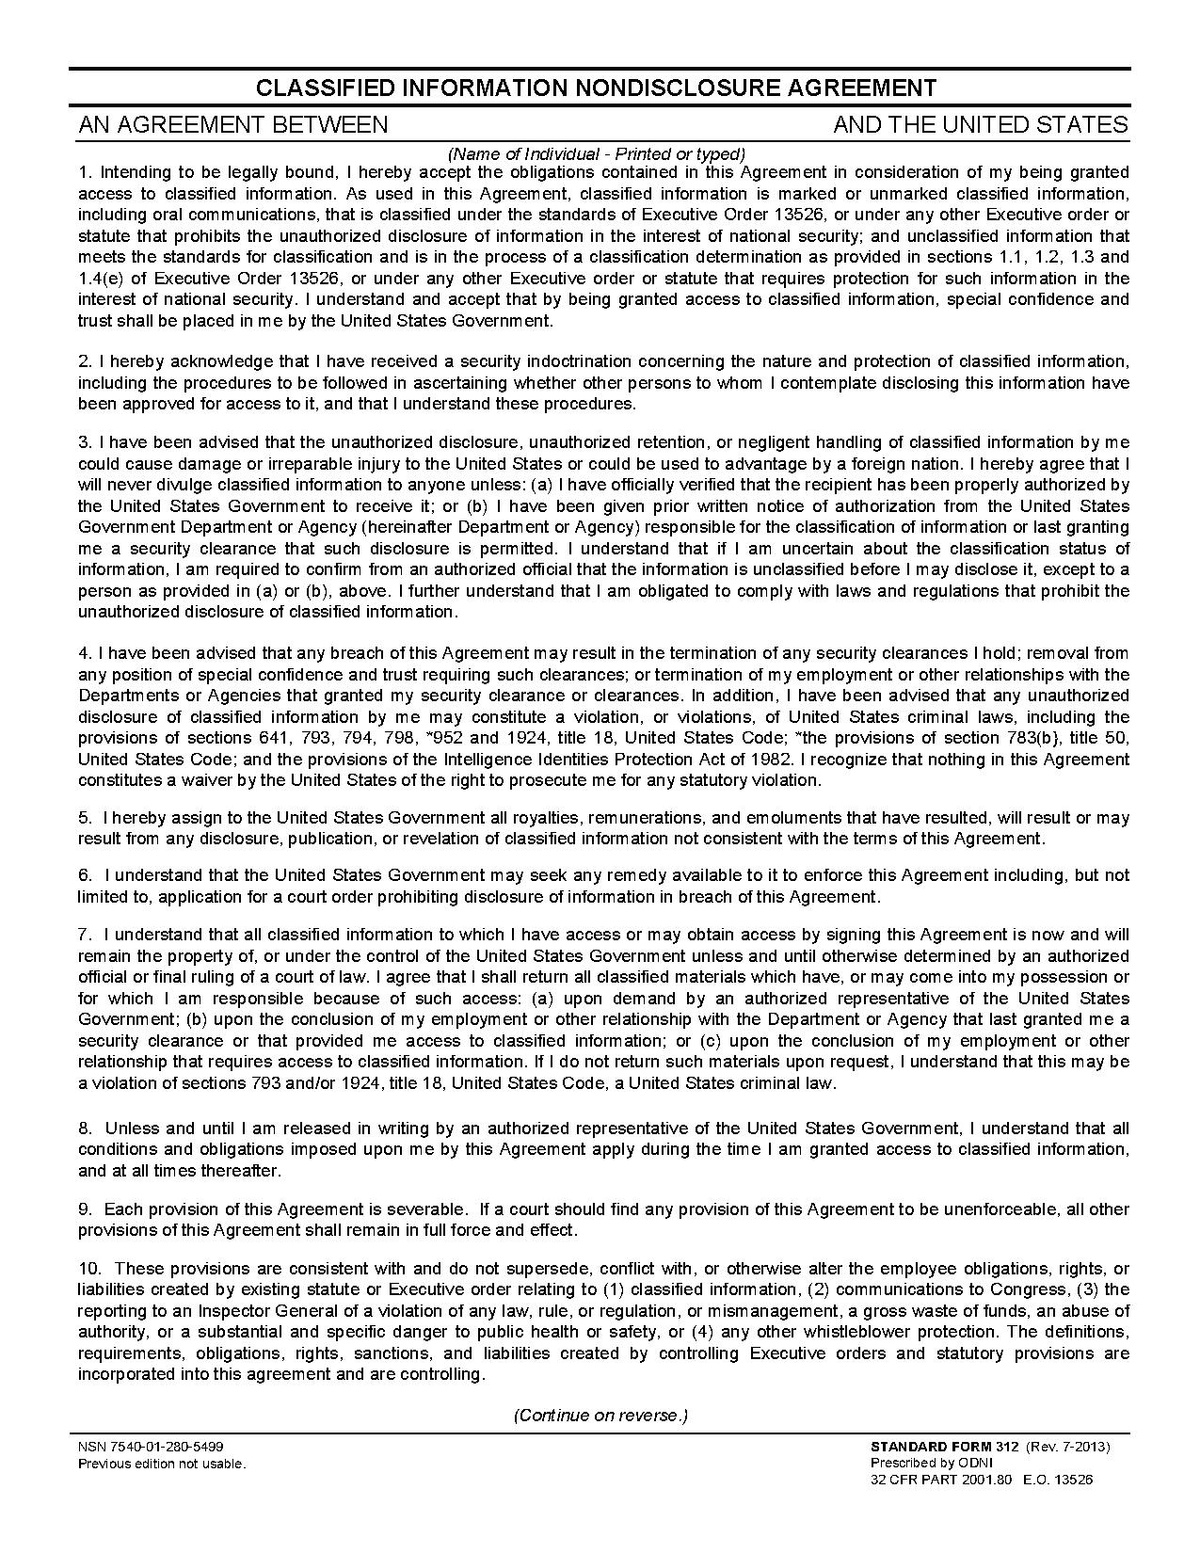 Free Non Disclosure Agreement Form Standard Form 312 Wikipedia